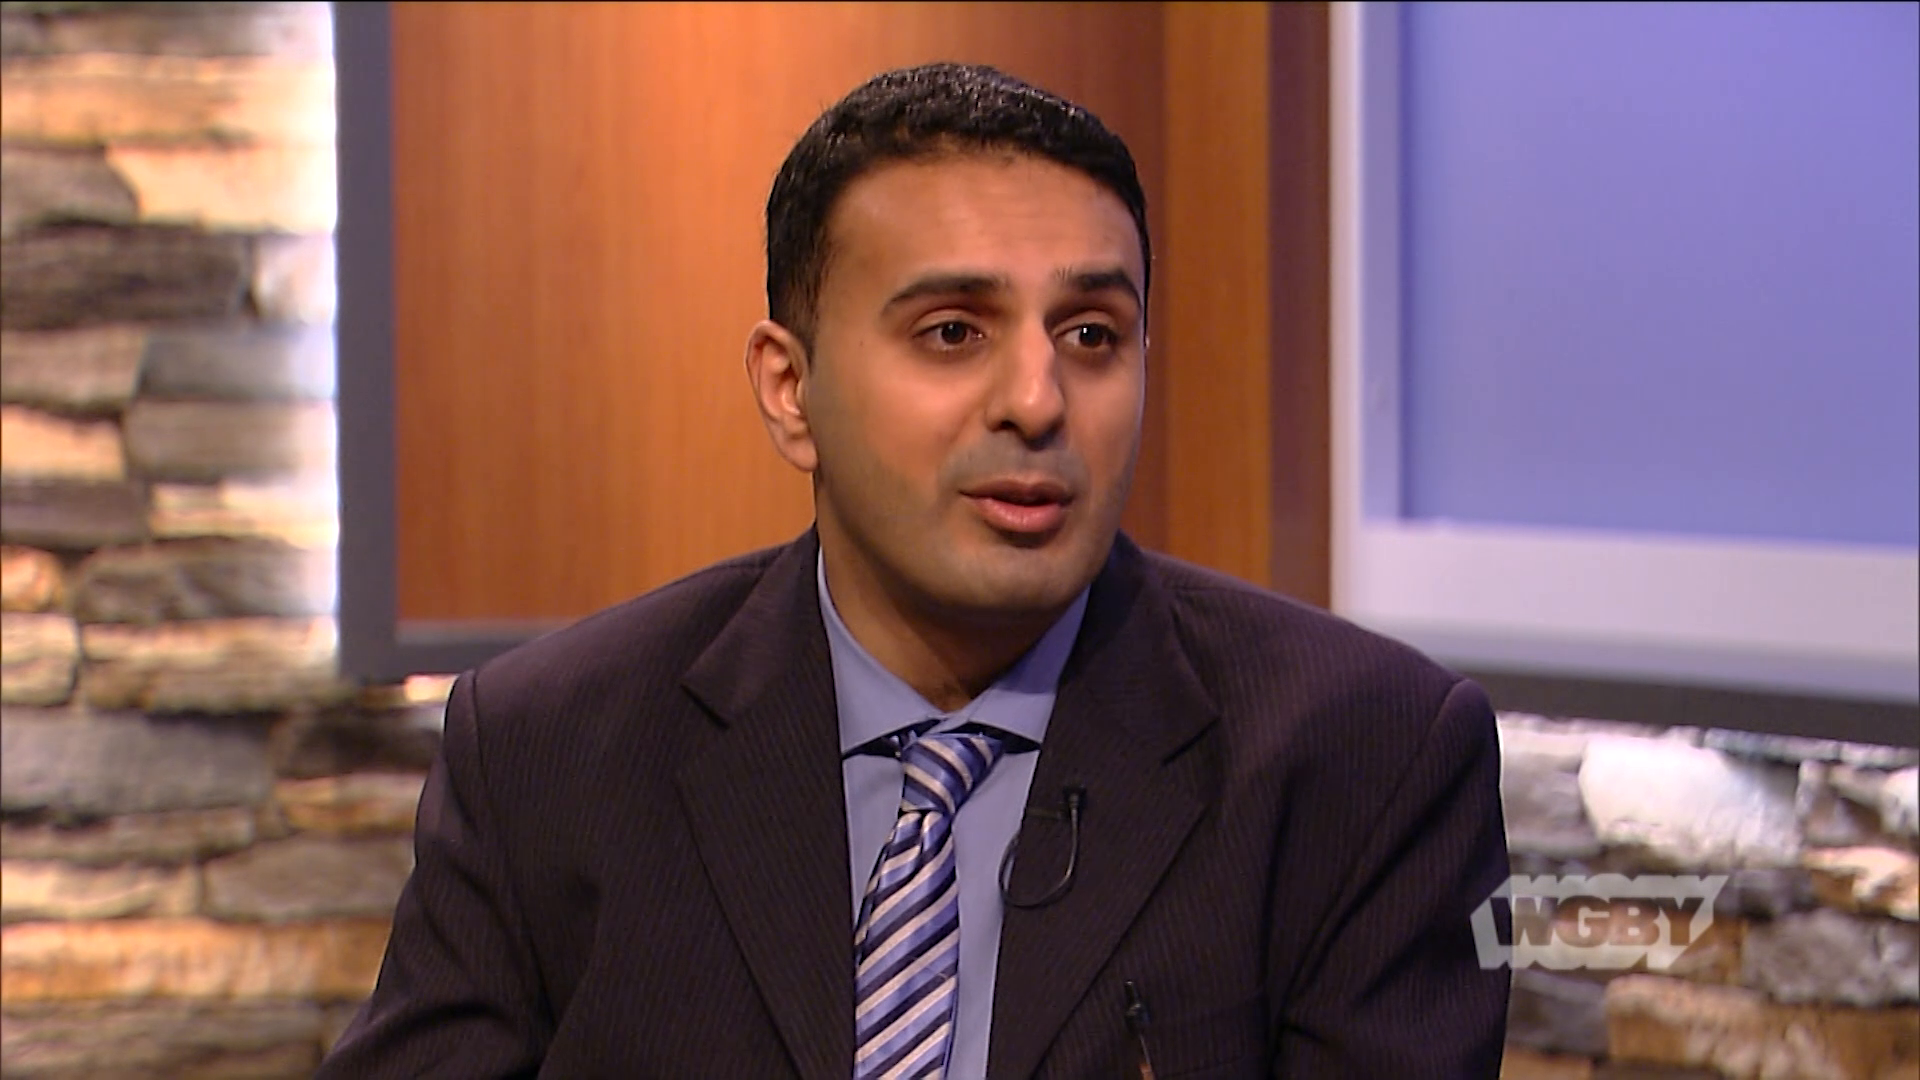 Holyoke Medical Center's Dr. Tuyyab Hasson discusses treatments and options for patients dealing with IBS and Celiac Disease.